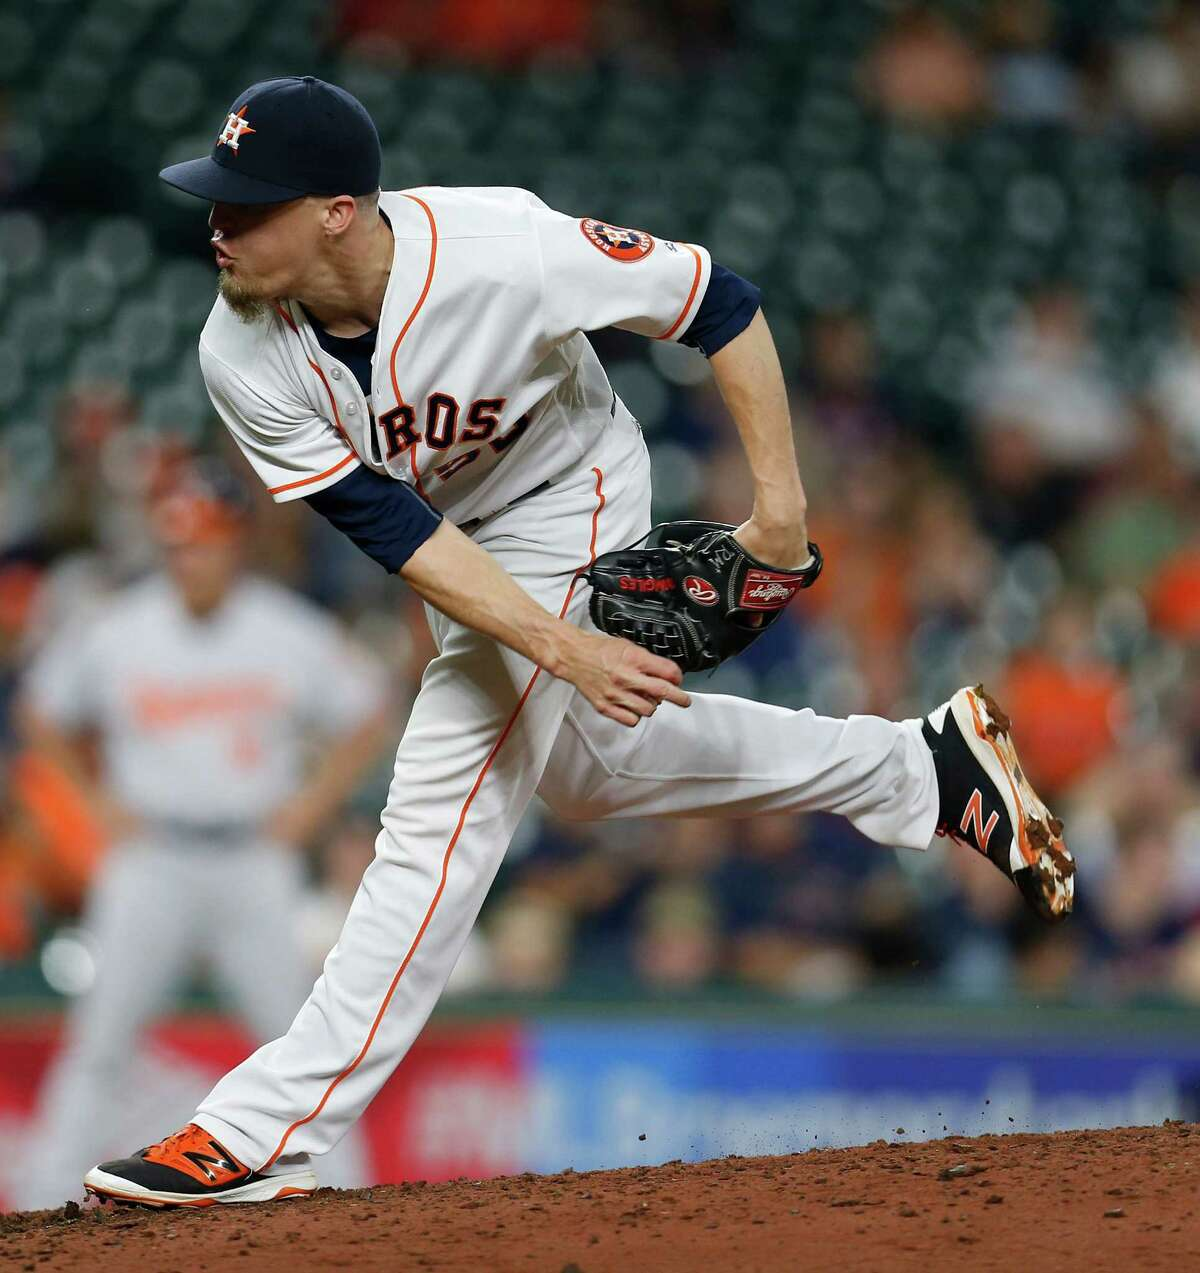 Houston Astros relief pitcher Ken Giles (53) pitches in the ninth inning of an MLB baseball game at Minute Maid Park,Thursday, May 26, 2016.